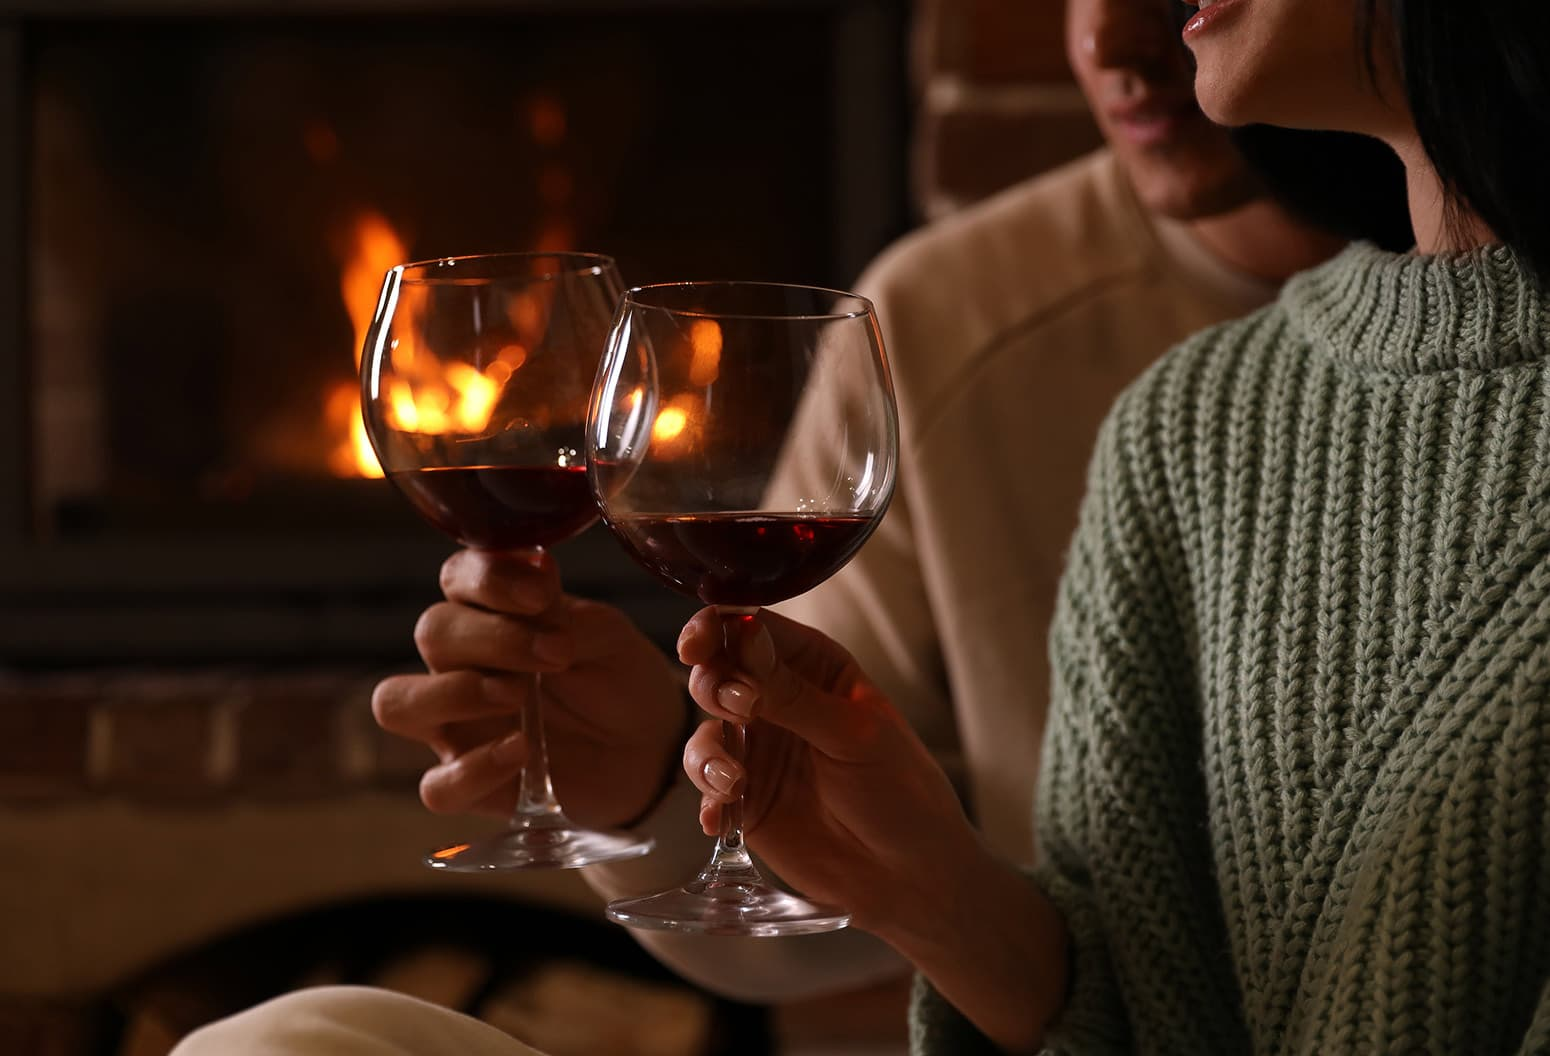 Couple with wine in front of a cozy fireplace